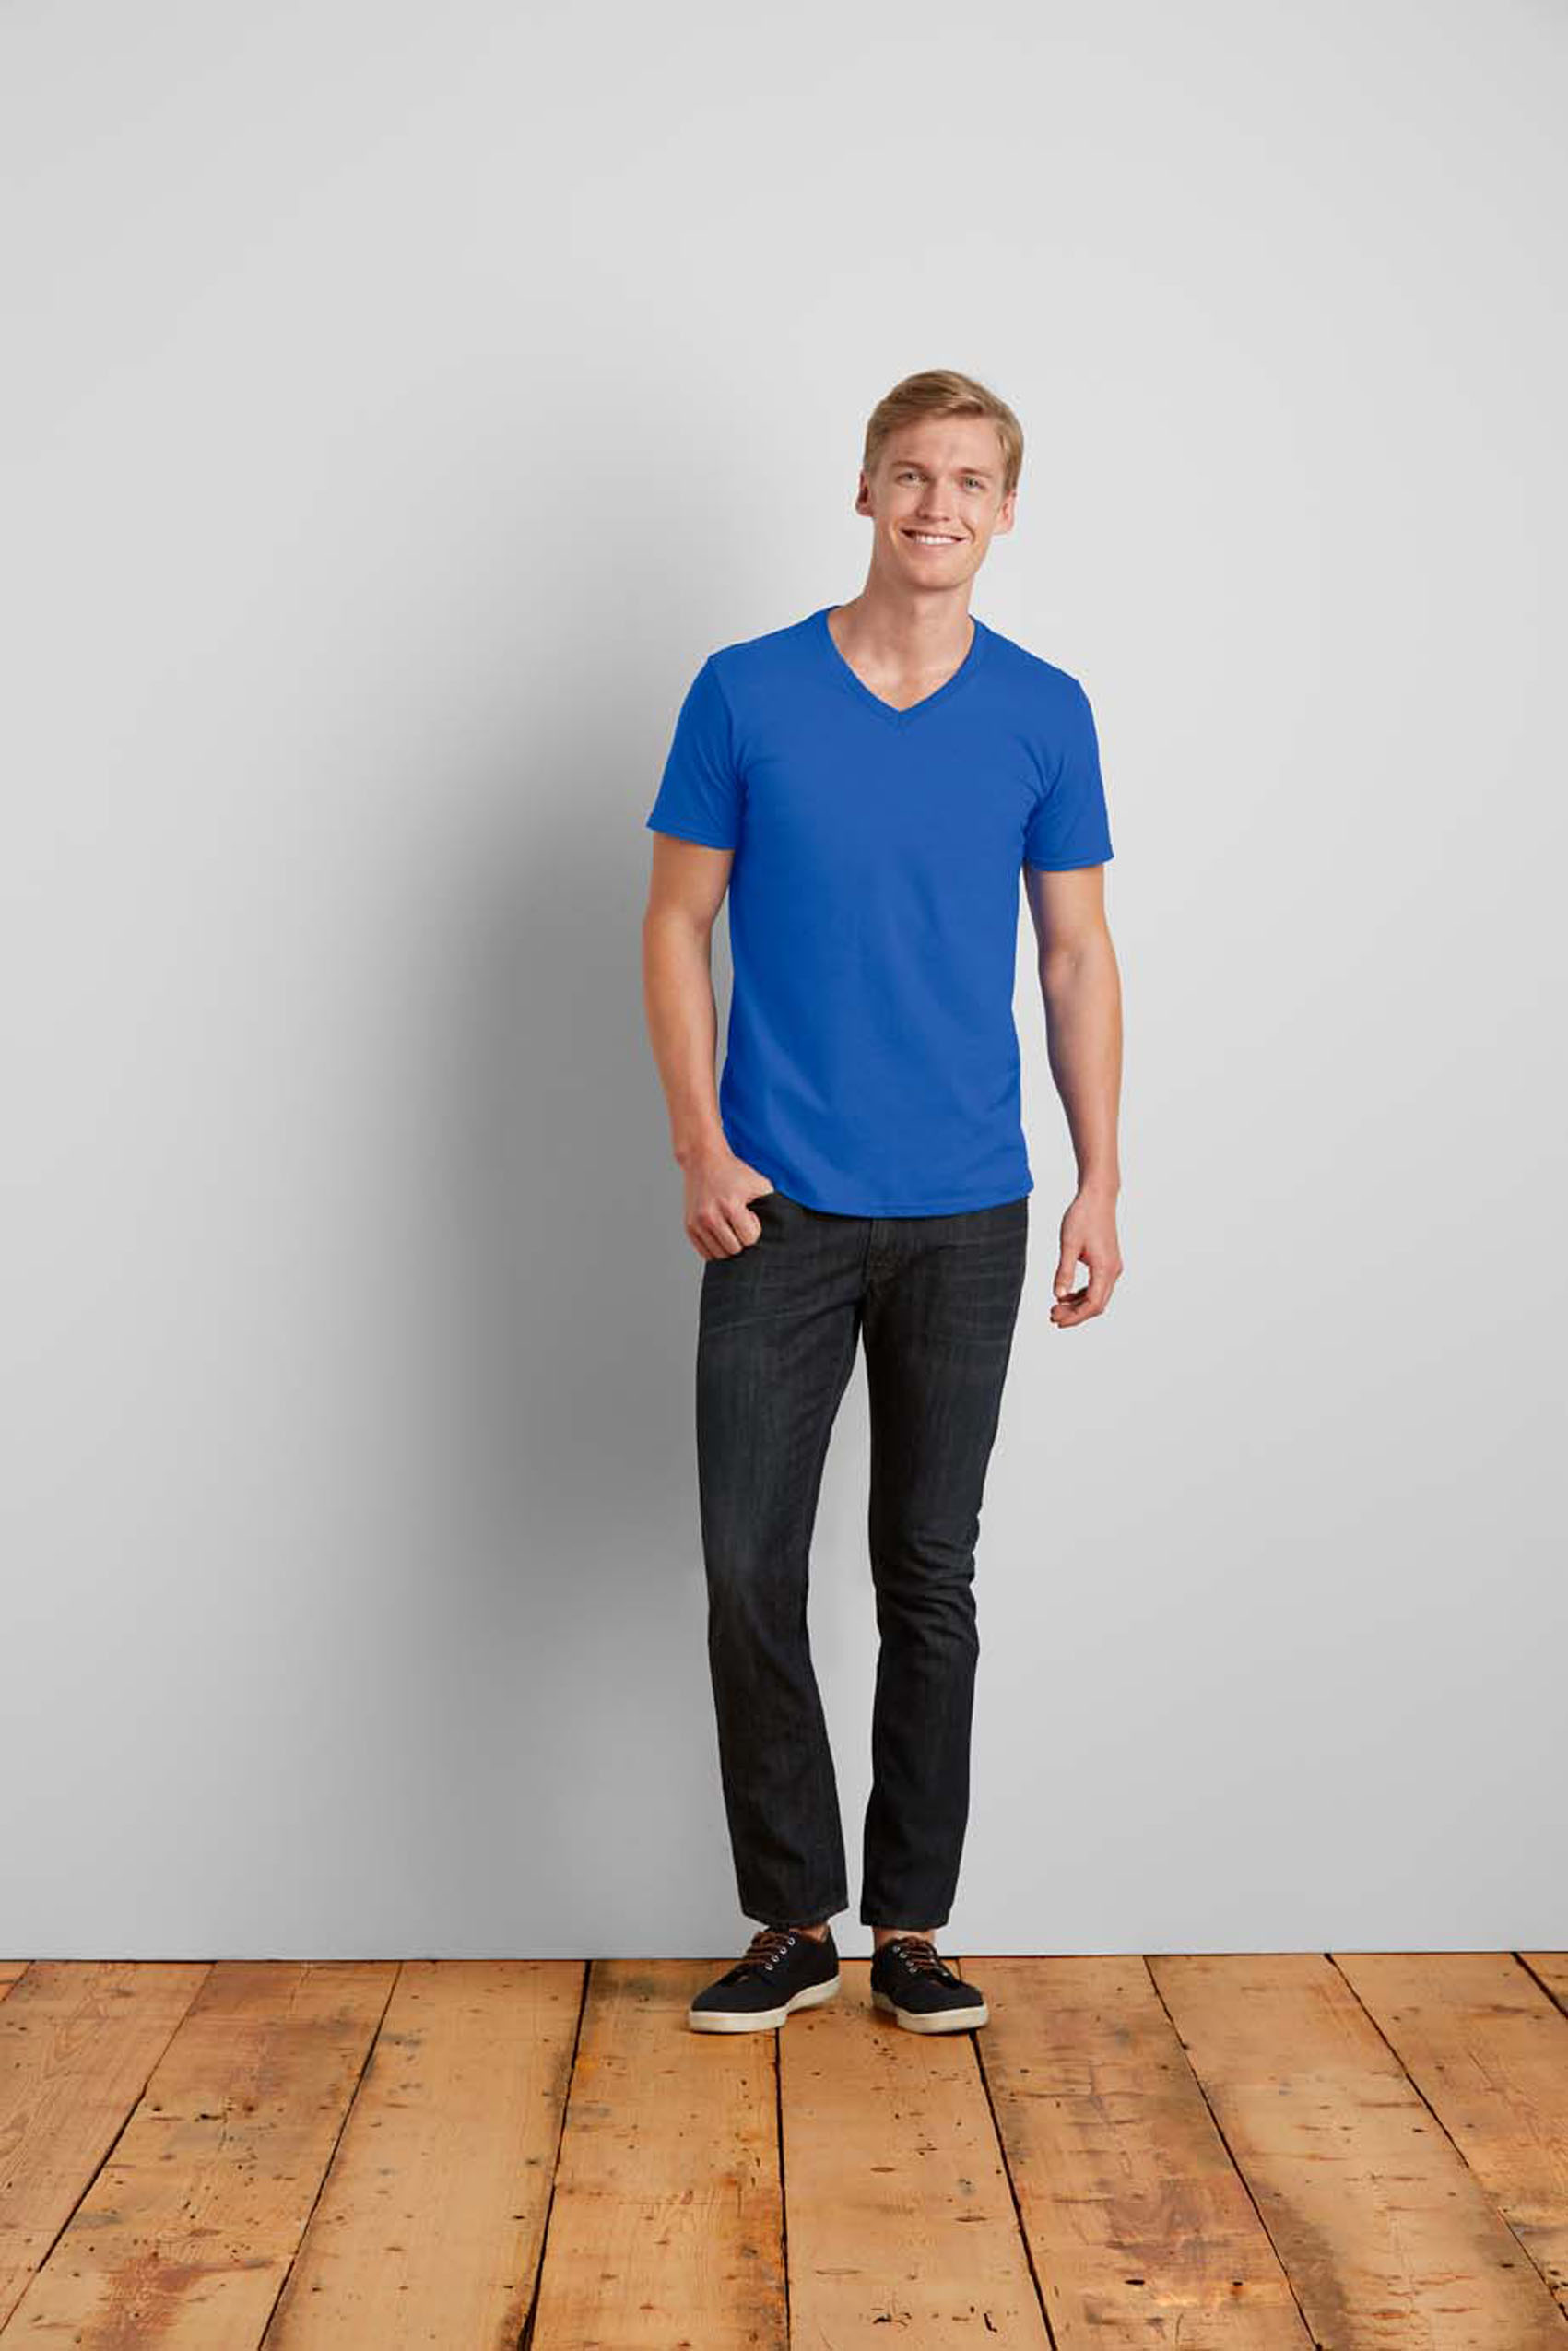 T-shirt v-neck Softstyle cotton for him